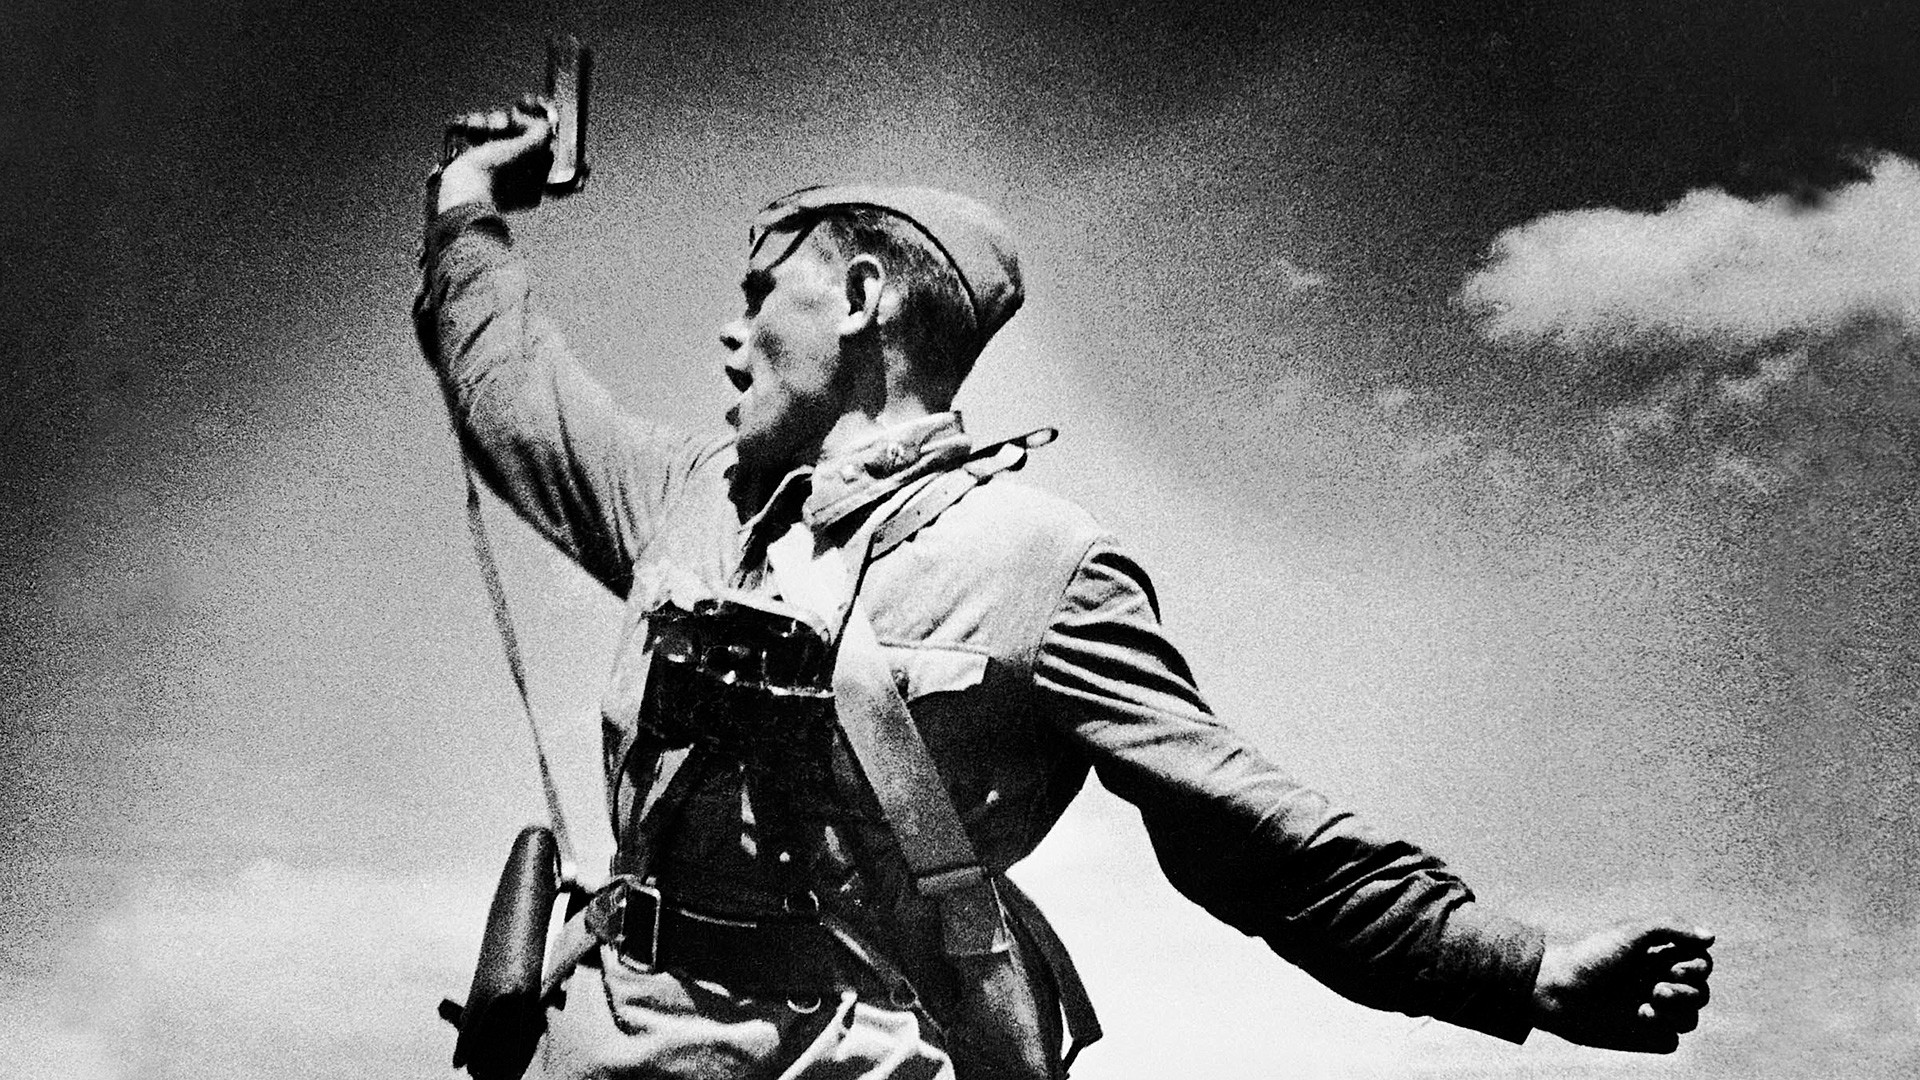 The Soviet Union suffered colossal losses in World War II, but emerged victorious.